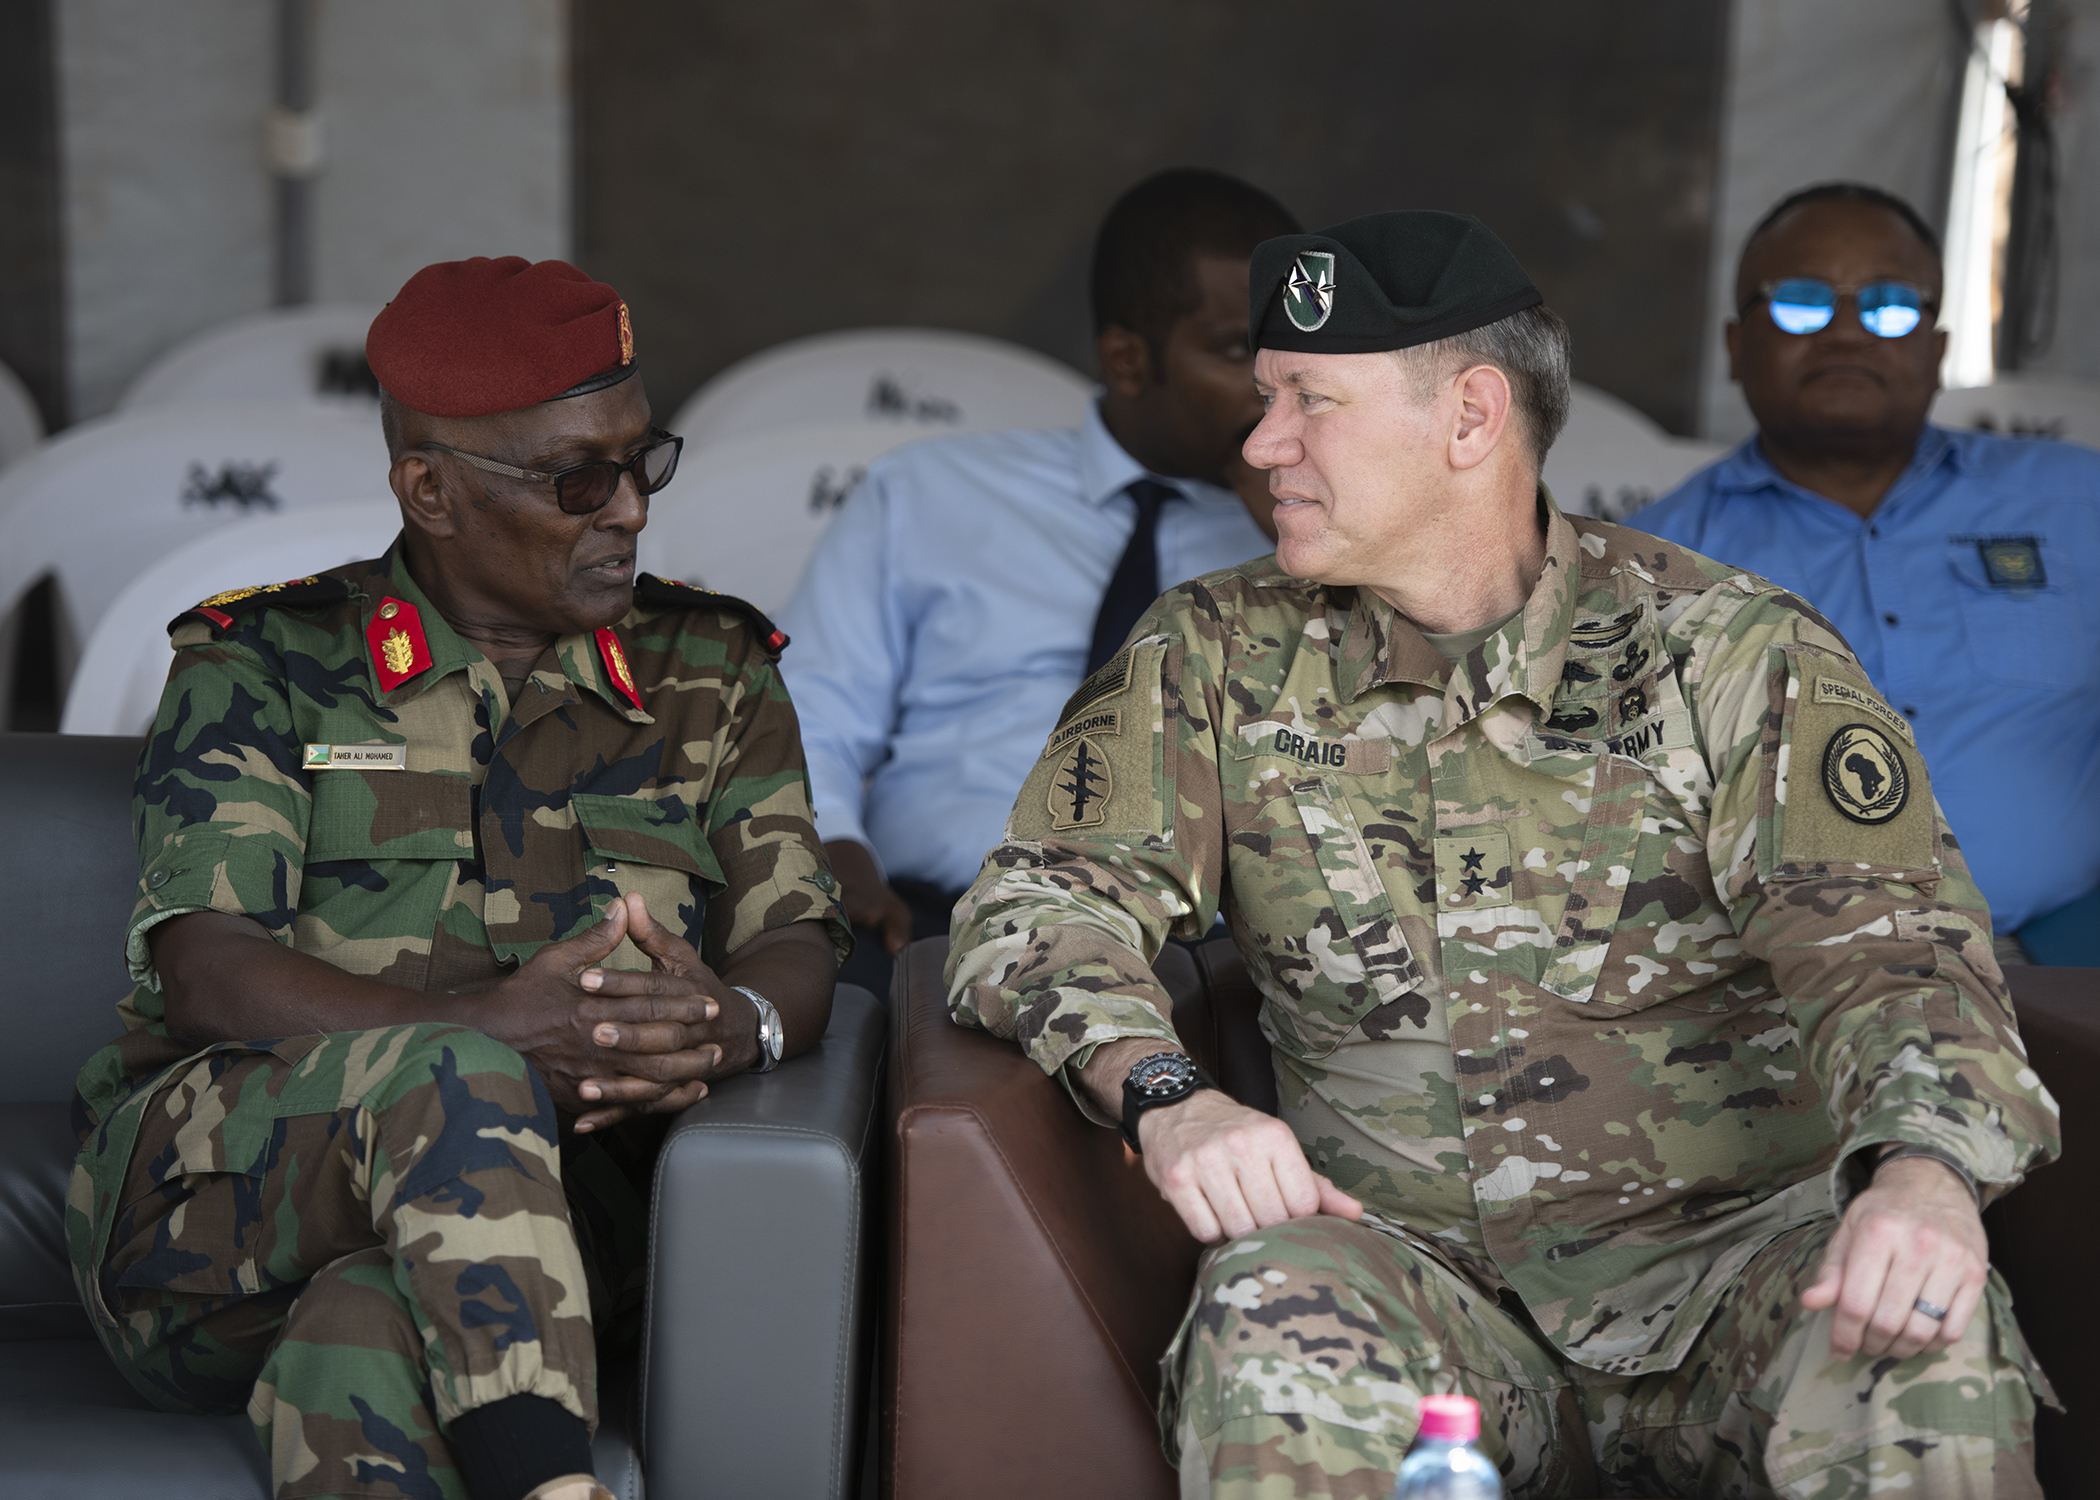 U.S. Army Maj. Gen. James D. Craig, commanding general, Combined Joint Task Force-Horn of Africa (CJTF-HOA), talks to a Djiboutian military officials during the Ali Oune Medical Clinic ribbon cutting ceremony in Ali Oune, Djibouti, Jan. 31, 2019. The clinic, which U.S. Navy Seabees from Naval Mobile Construction Battalion 1, assigned to CJTF-HOA, have been working to complete for five months, is intended to enhance the Ministry of Health for Djibouti's ability to provide basic medical, birth and after care to the Ali Oune village and its more than 1,000 residents and rural neighbors. (U.S. Air Force photo by Tech. Sgt. Shawn Nickel)